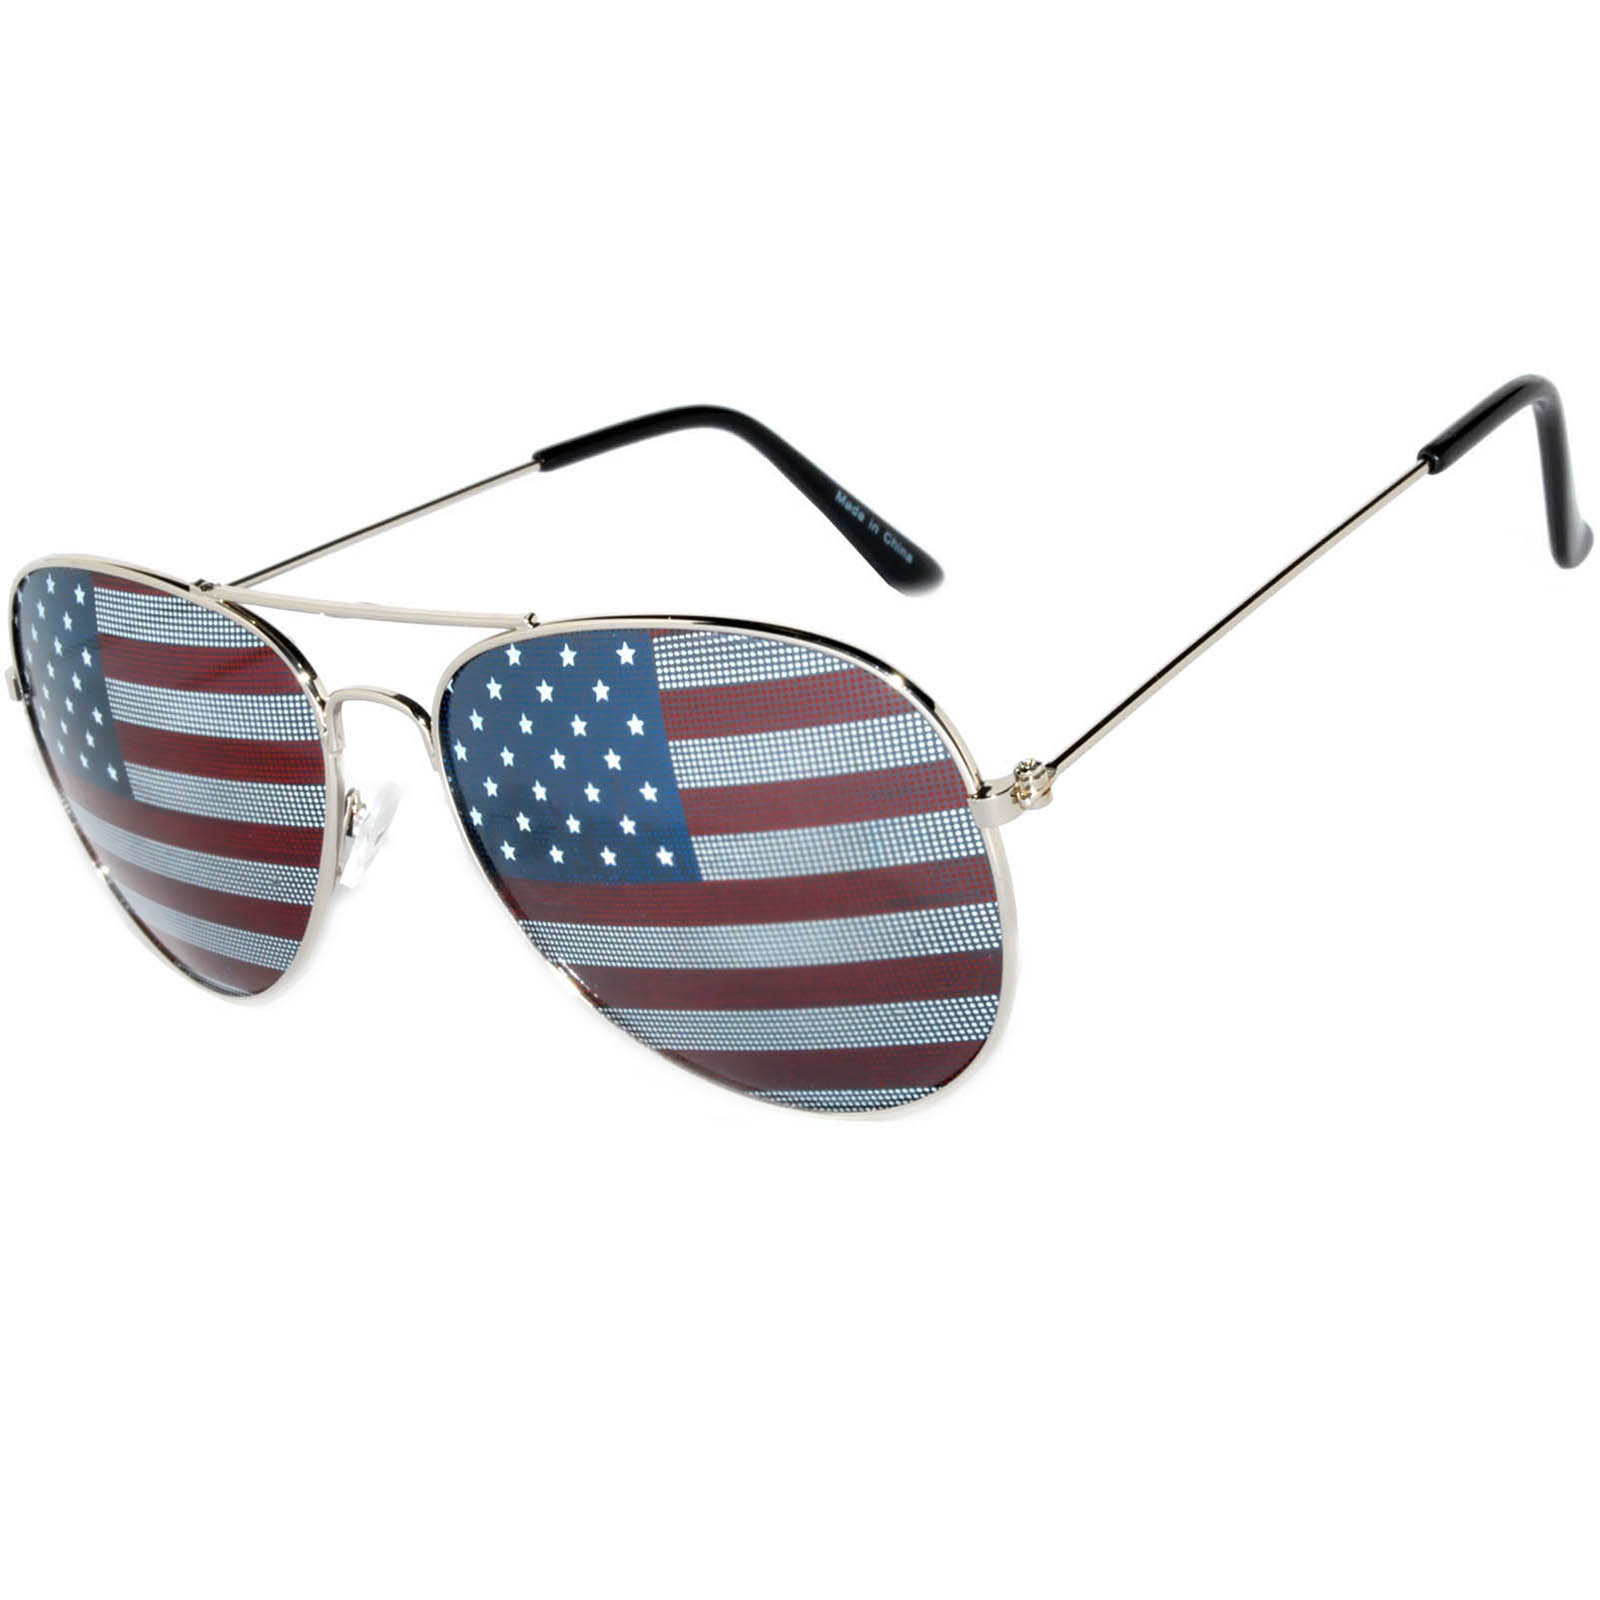 6930972664d4 OWL ® Eyewear Wholesale Aviator Sunglasses American Flag Lens Silver ...